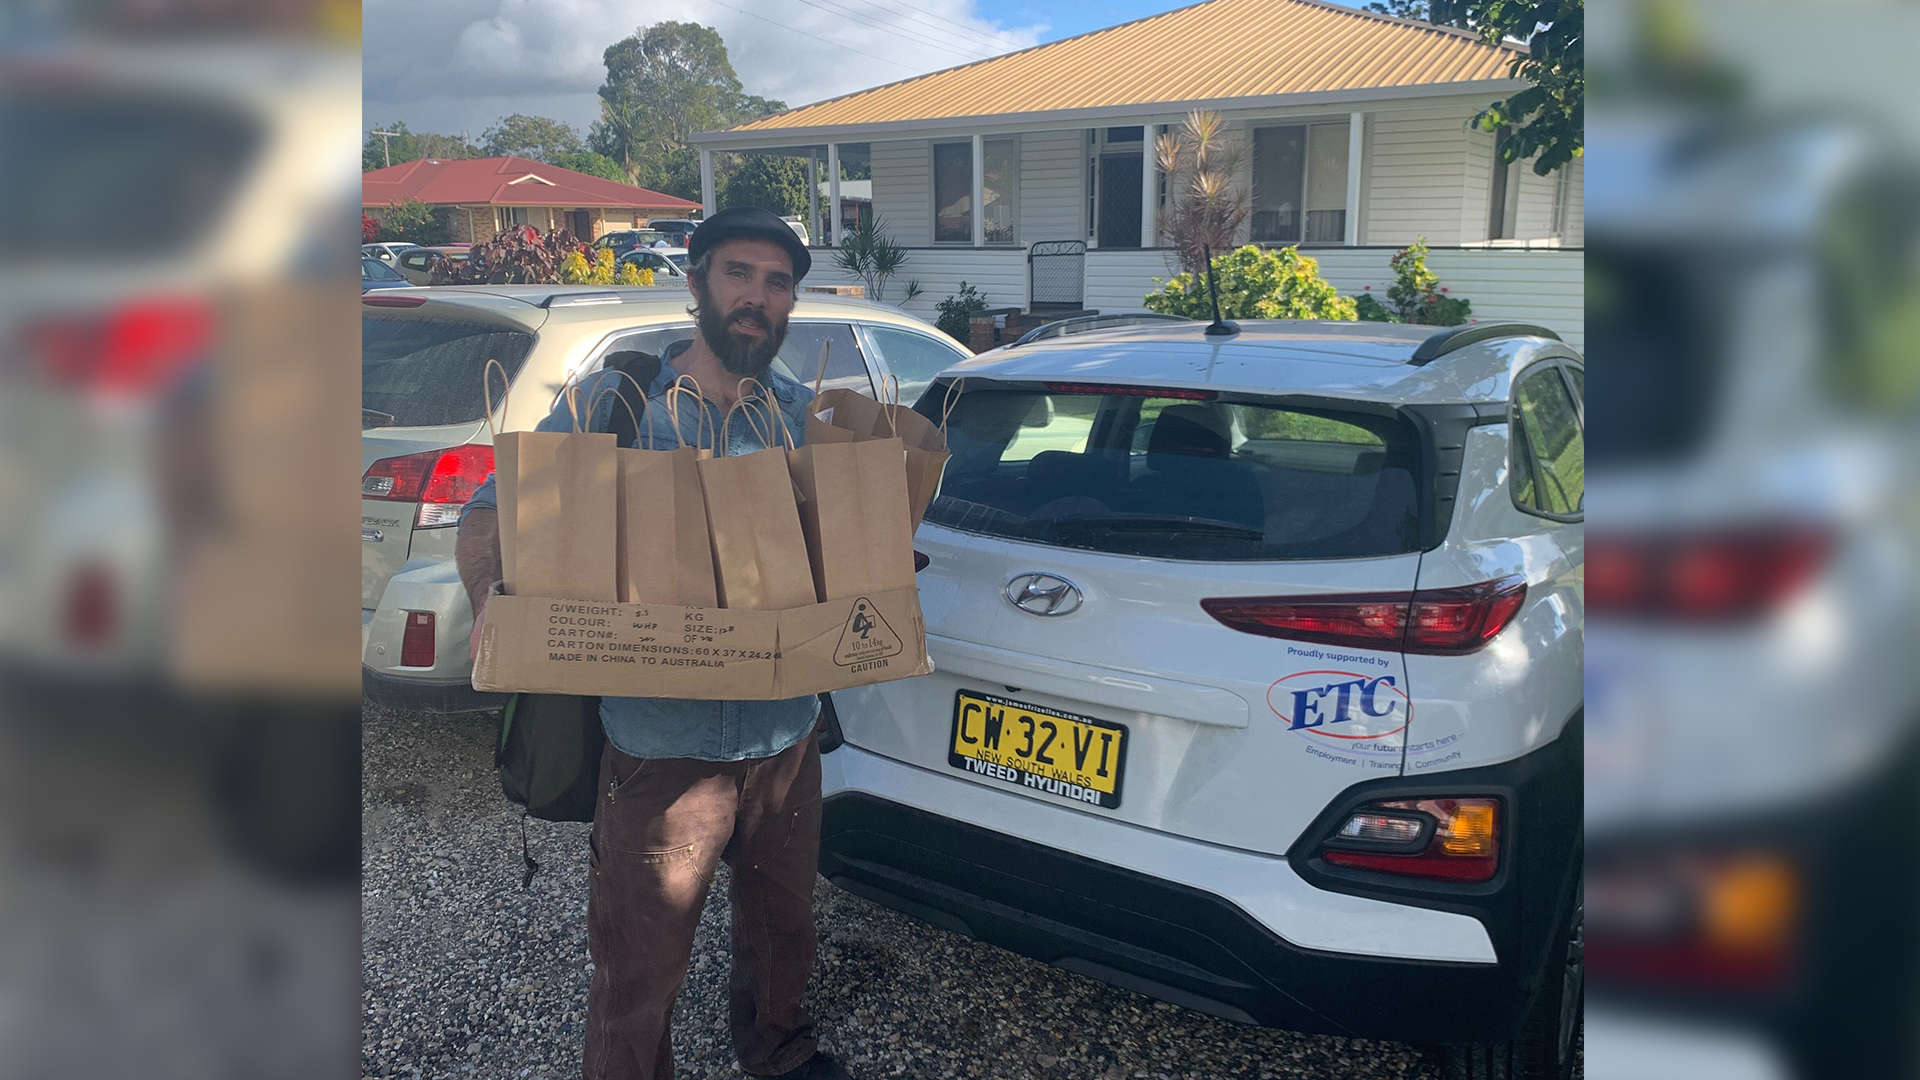 porch packages being delivered to local youth